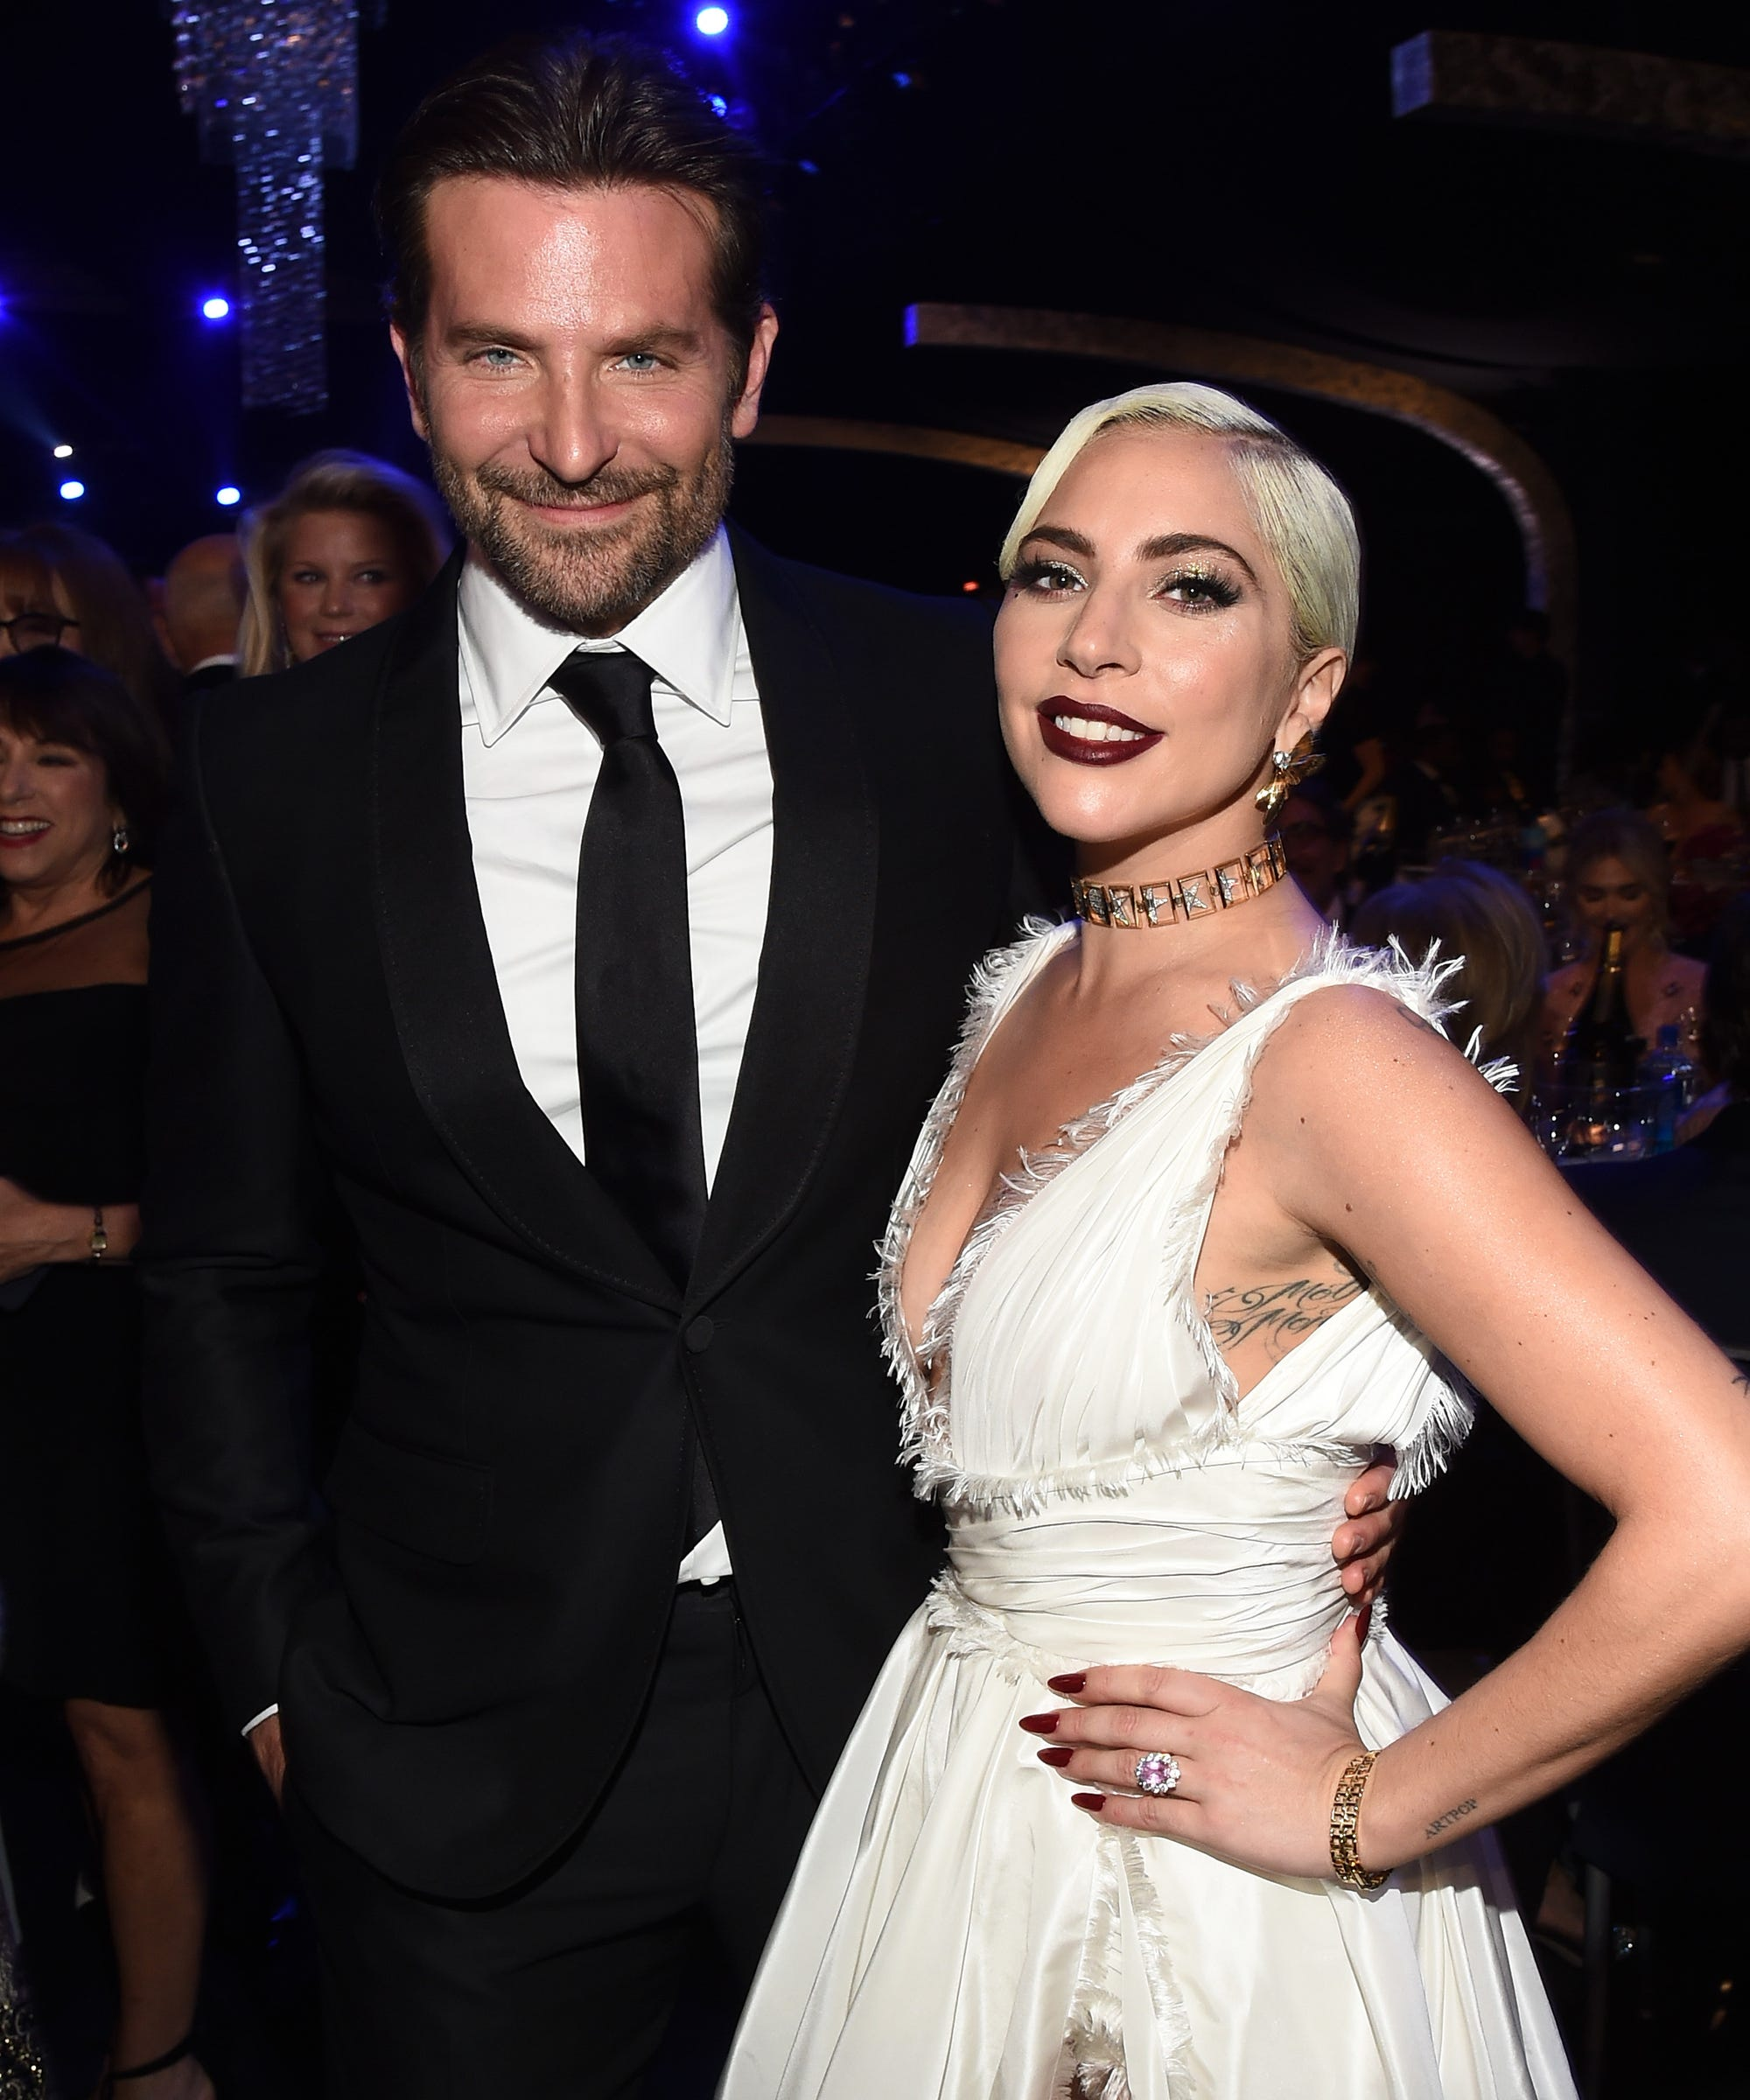 Bradley Cooper Gives An Update On His Relationship With Lady Gaga